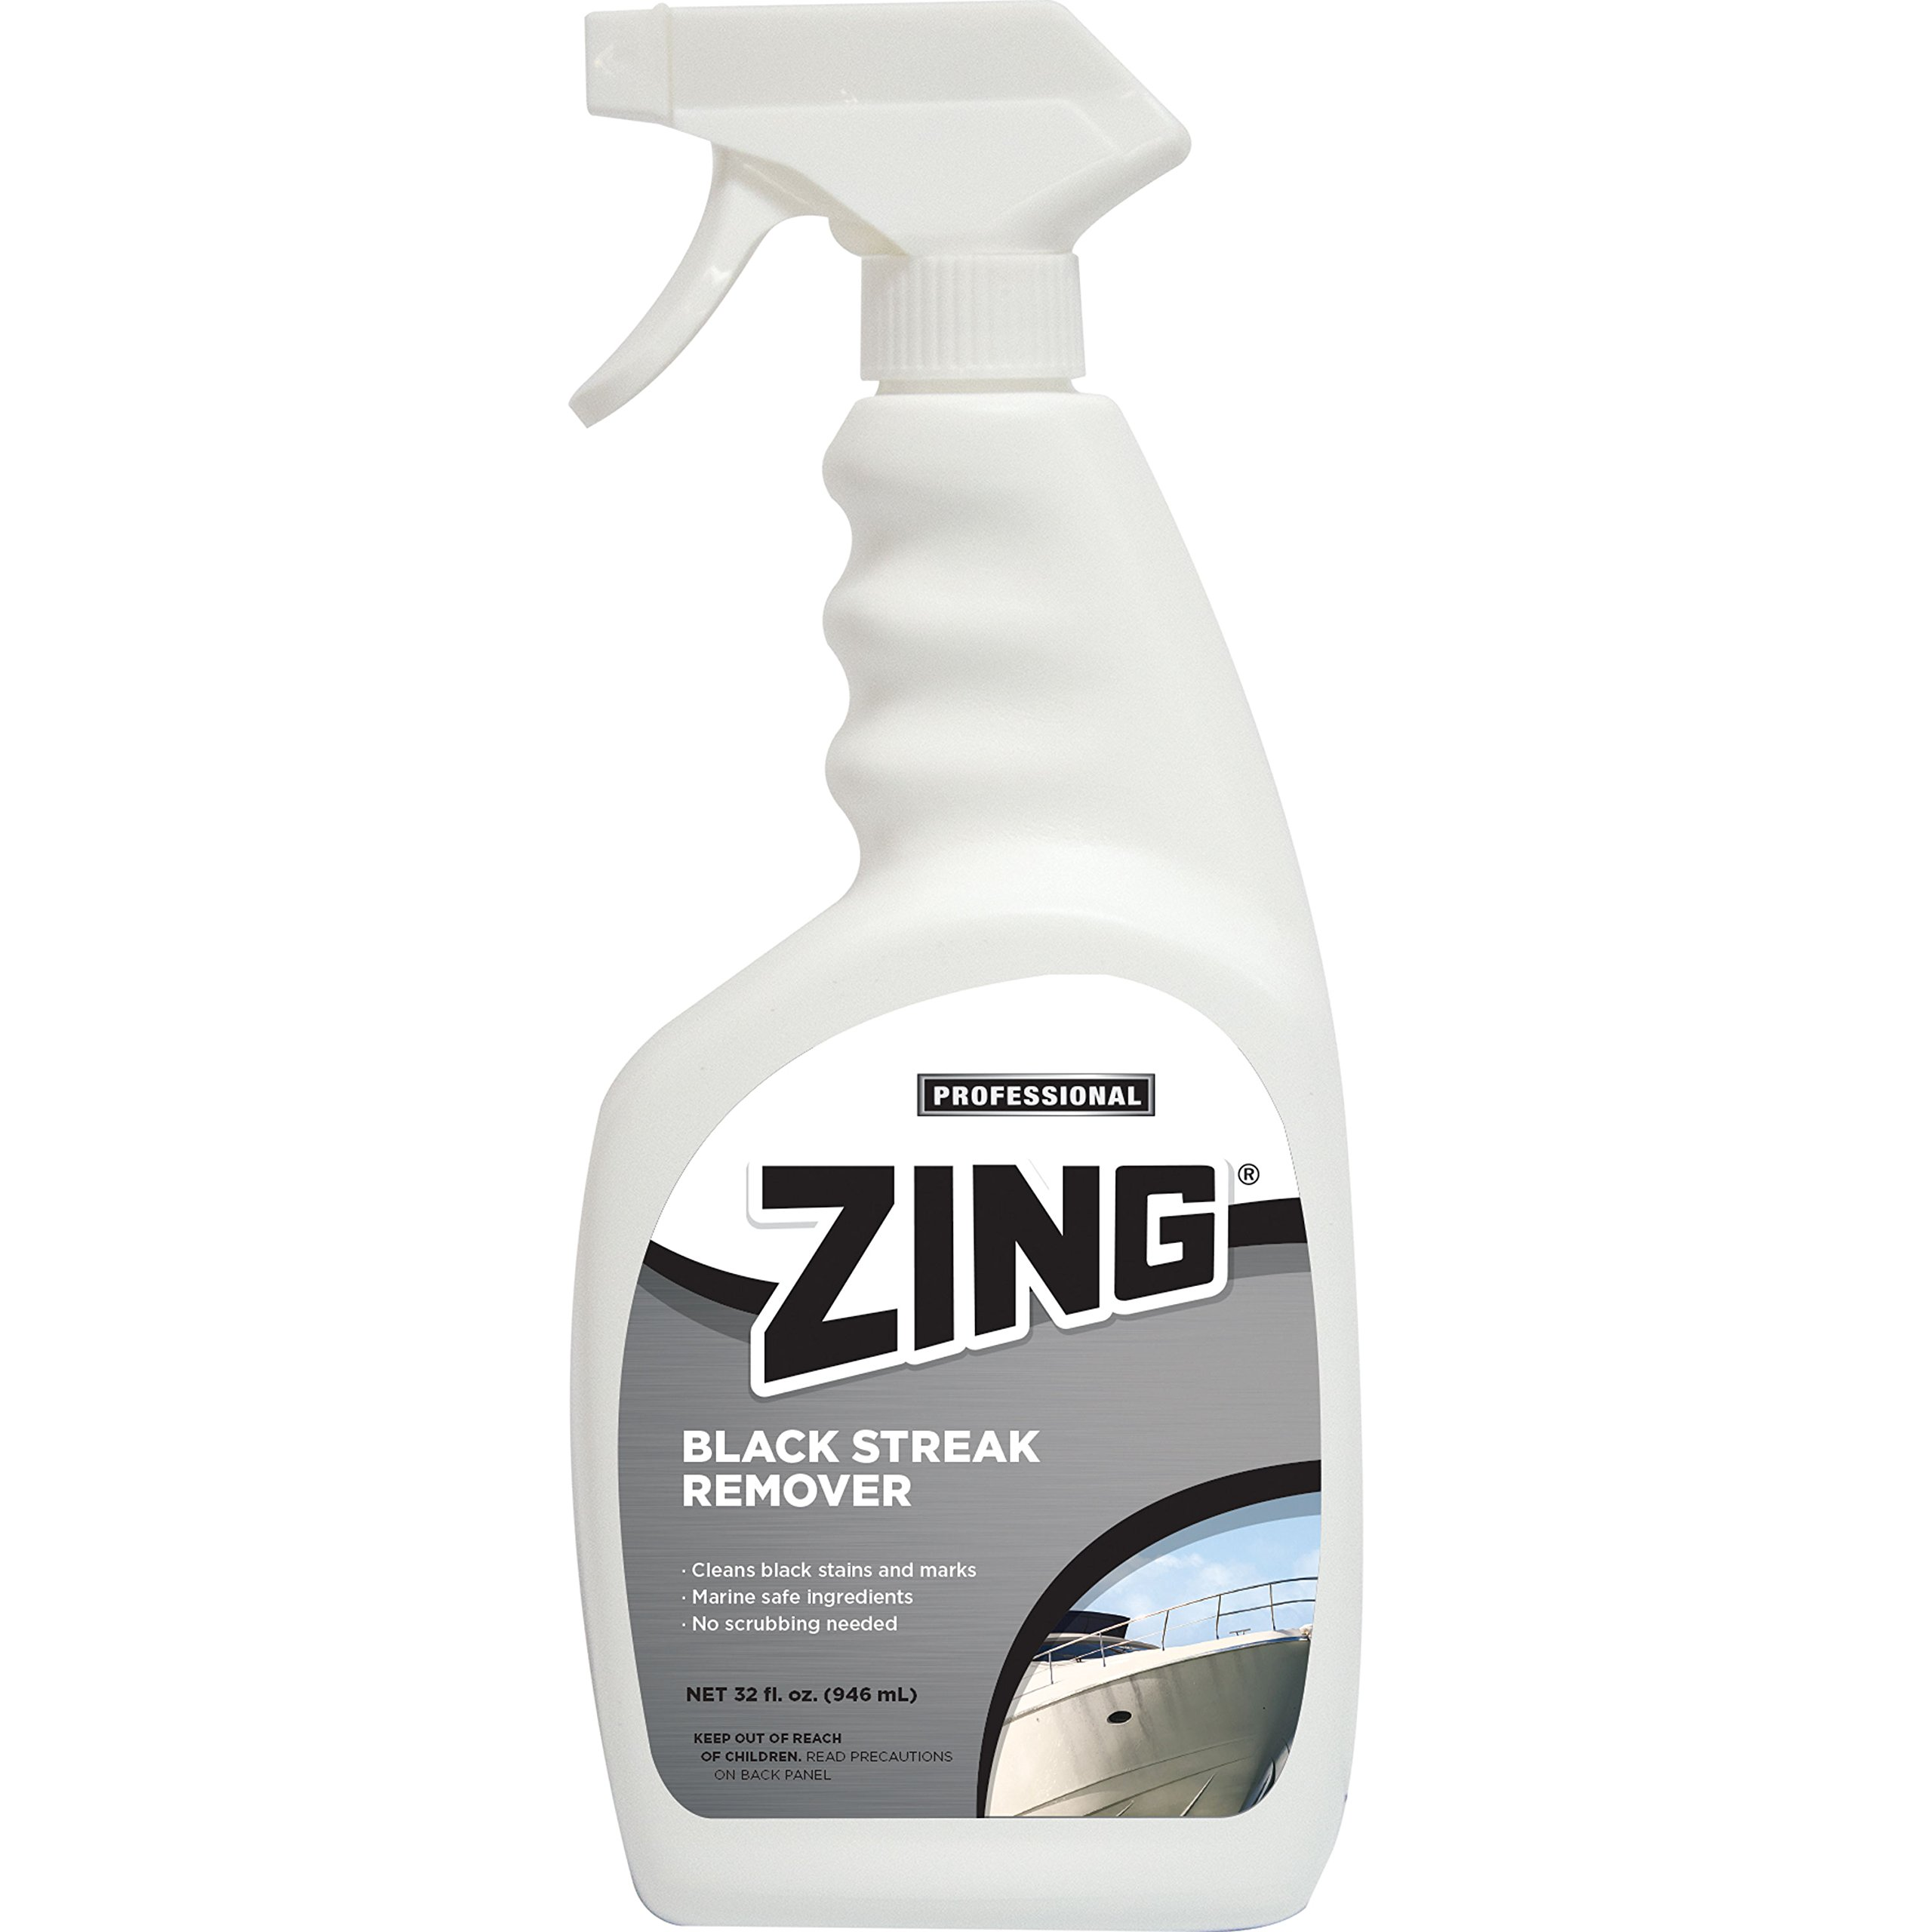 Zing Z495-QPS6 Professional Black Streak Remover - 32 oz. Spray Bottle